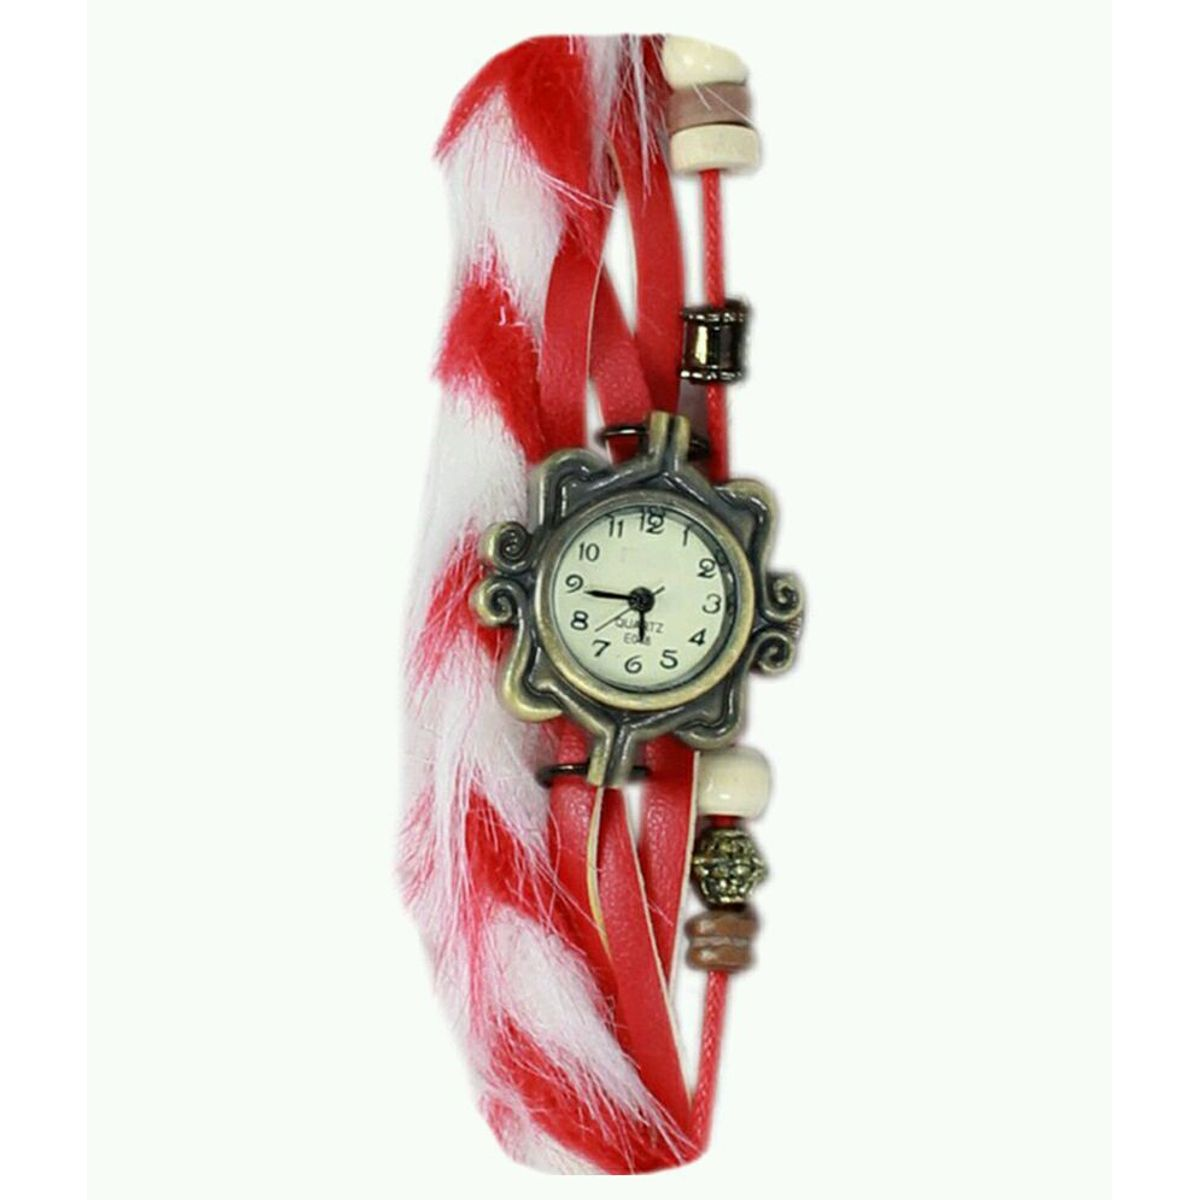 Buy Vintage Watches Womens Watches Ladies Watches Girls Watches ...